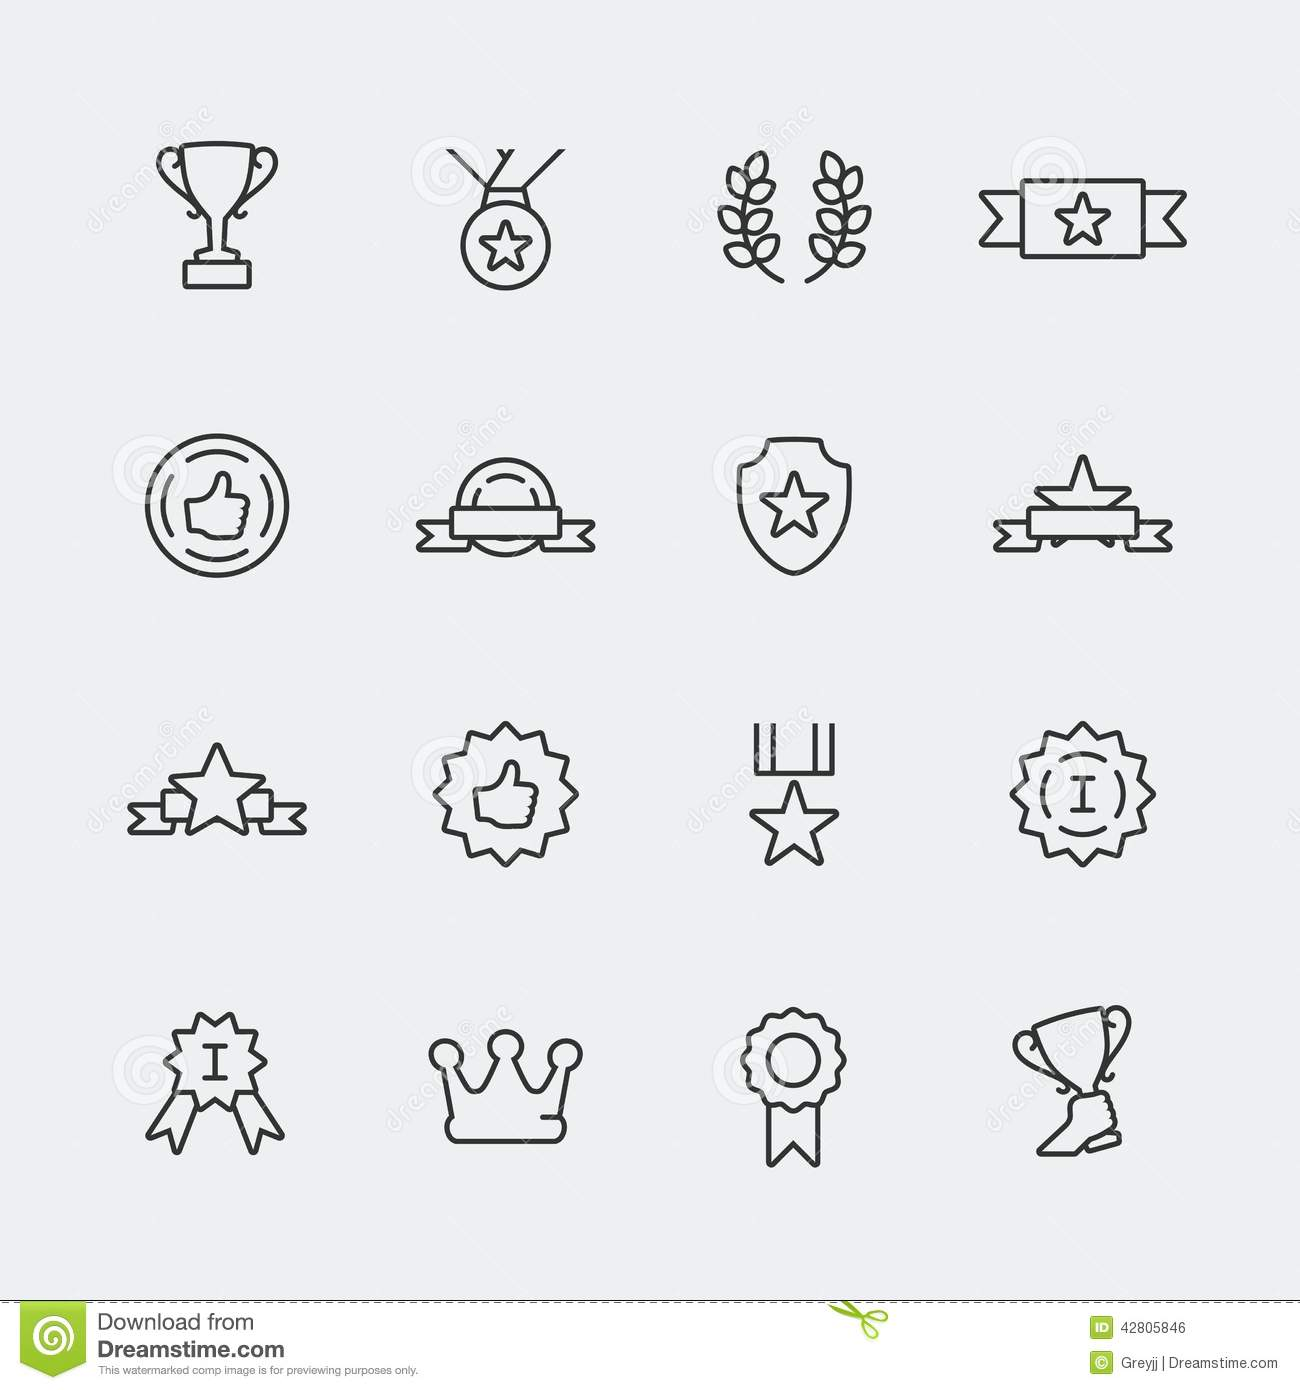 Stock Images Event Icons Simple Set Events Related Vector Your Design Application Image32191934 likewise Proudest Monkey Logo Design besides Stock Illustration Vector Awards Icons Set Mini Image42805846 also Free Embroidery Pattern And Things Halloween also Developer Wants Roy S Auto For Coffee Shop 9543180. on planning design